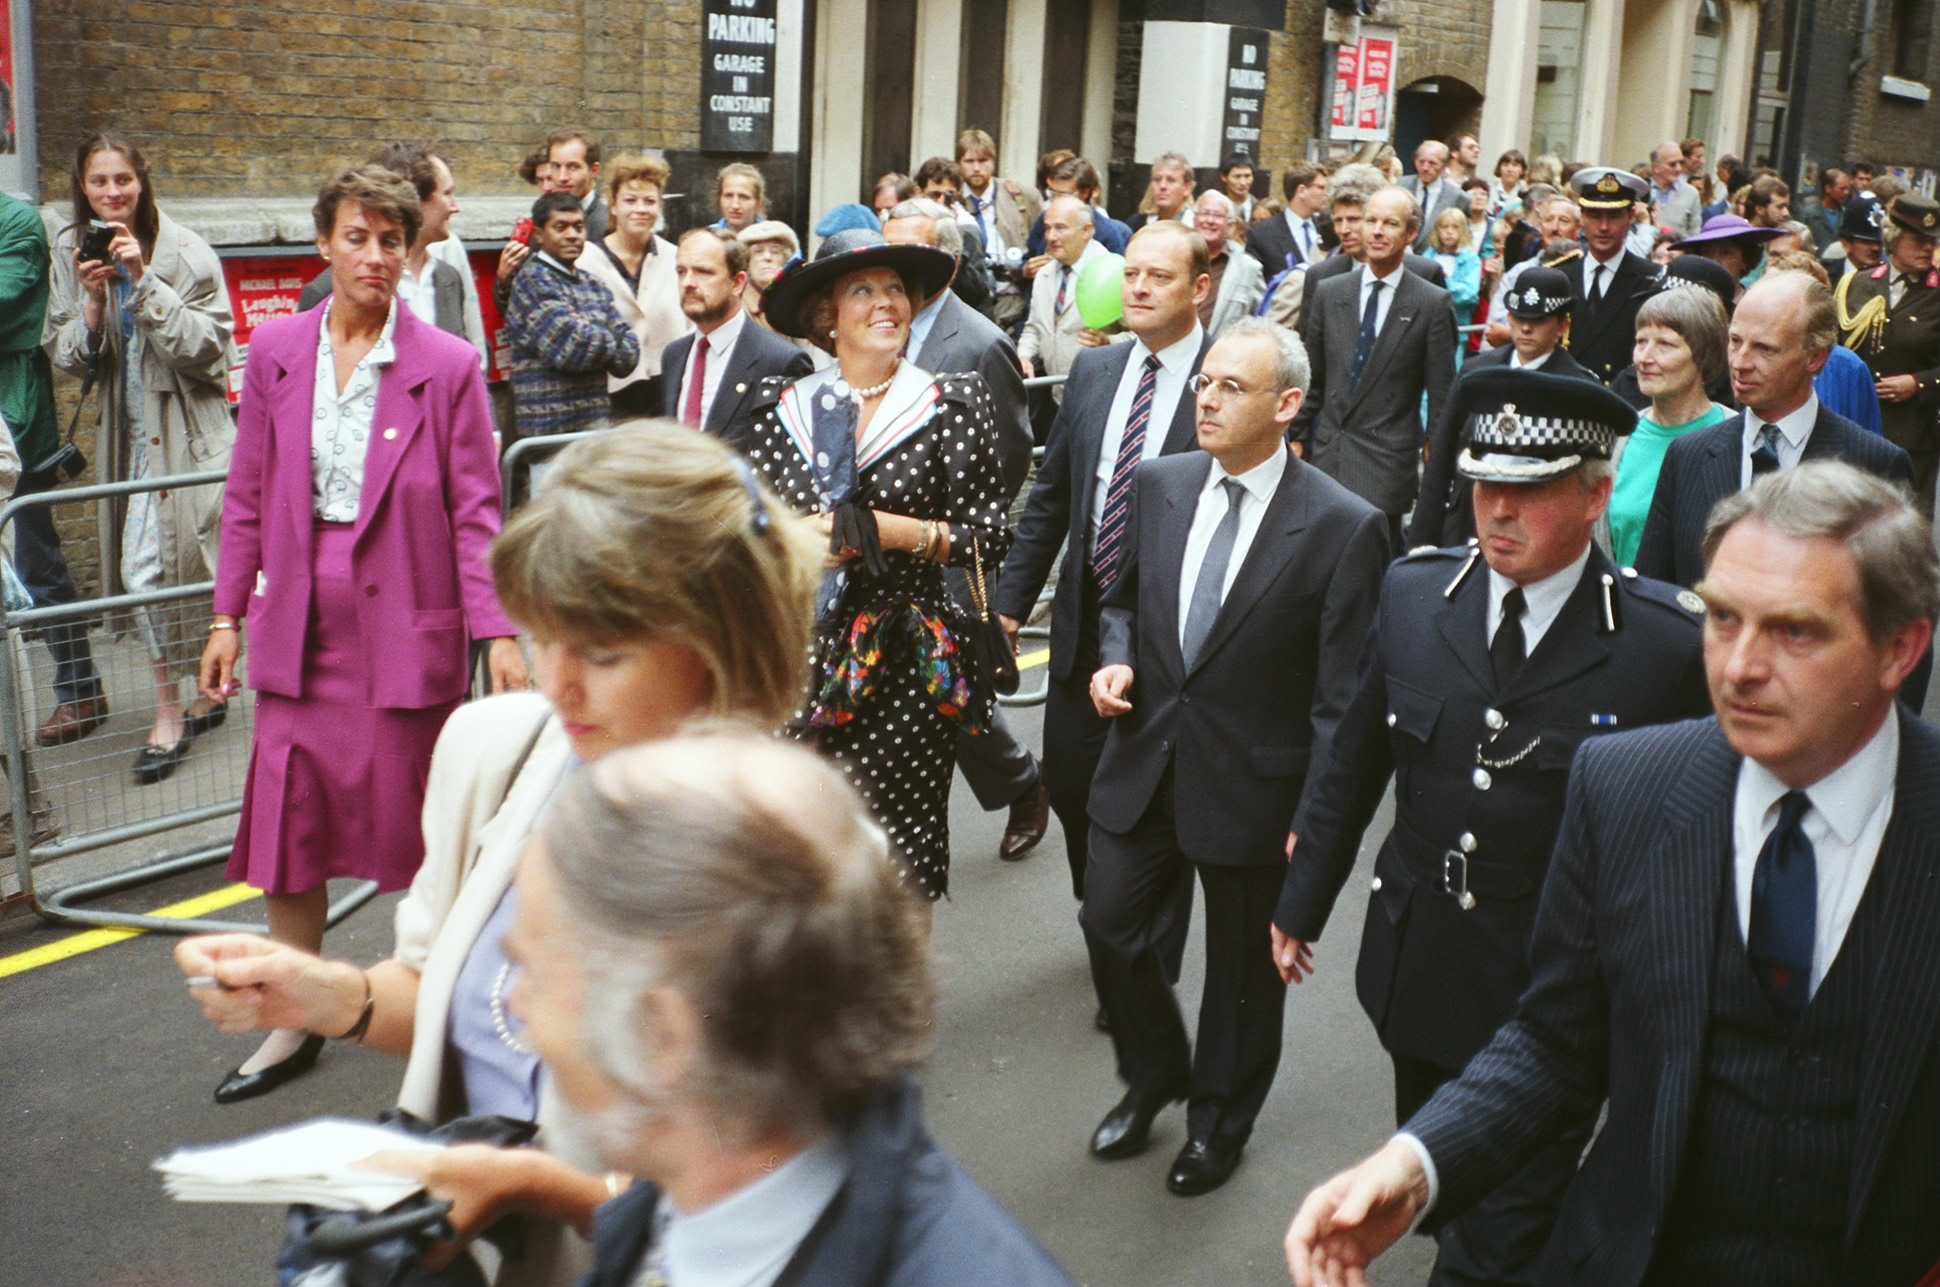 Royal Walkabout Shorts Gardens. Queen Beatrix, escorted by David Bieda, en route to the reception.